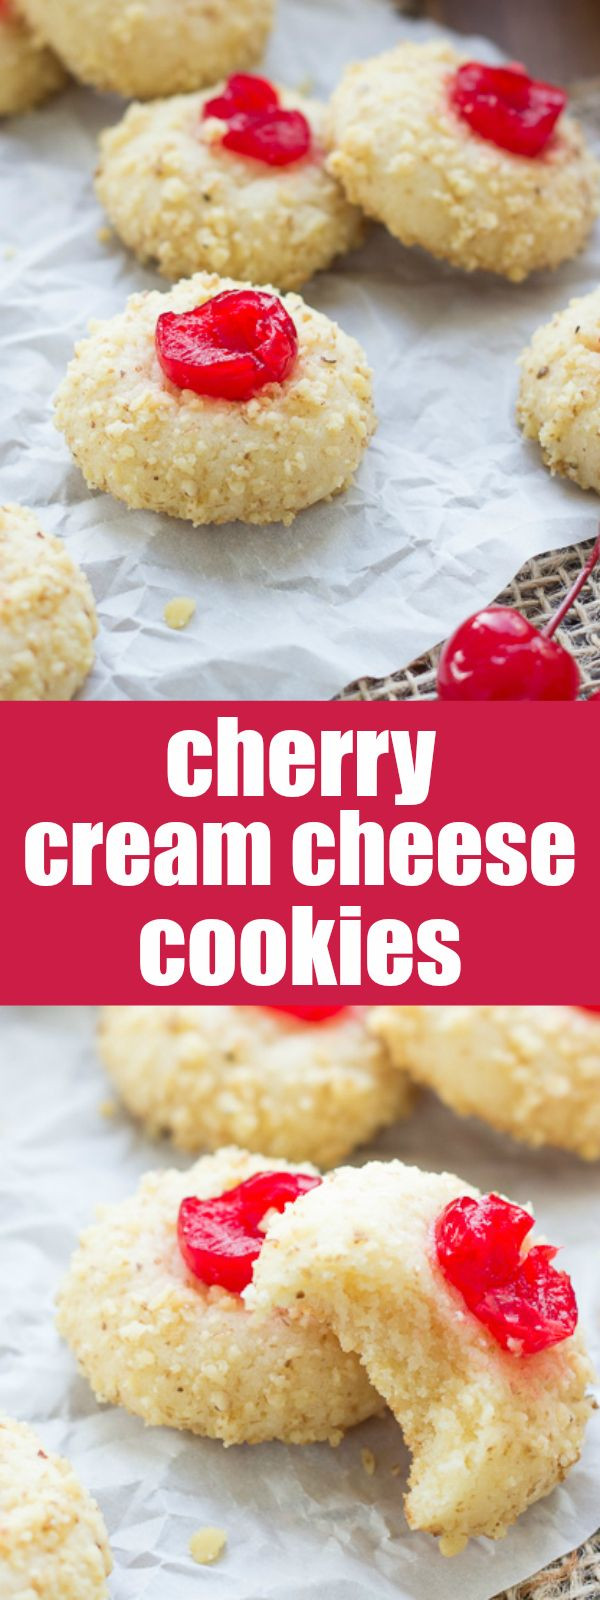 Cream Cheese Christmas Cookies  Cherry Cream Cheese Cookies Recipe